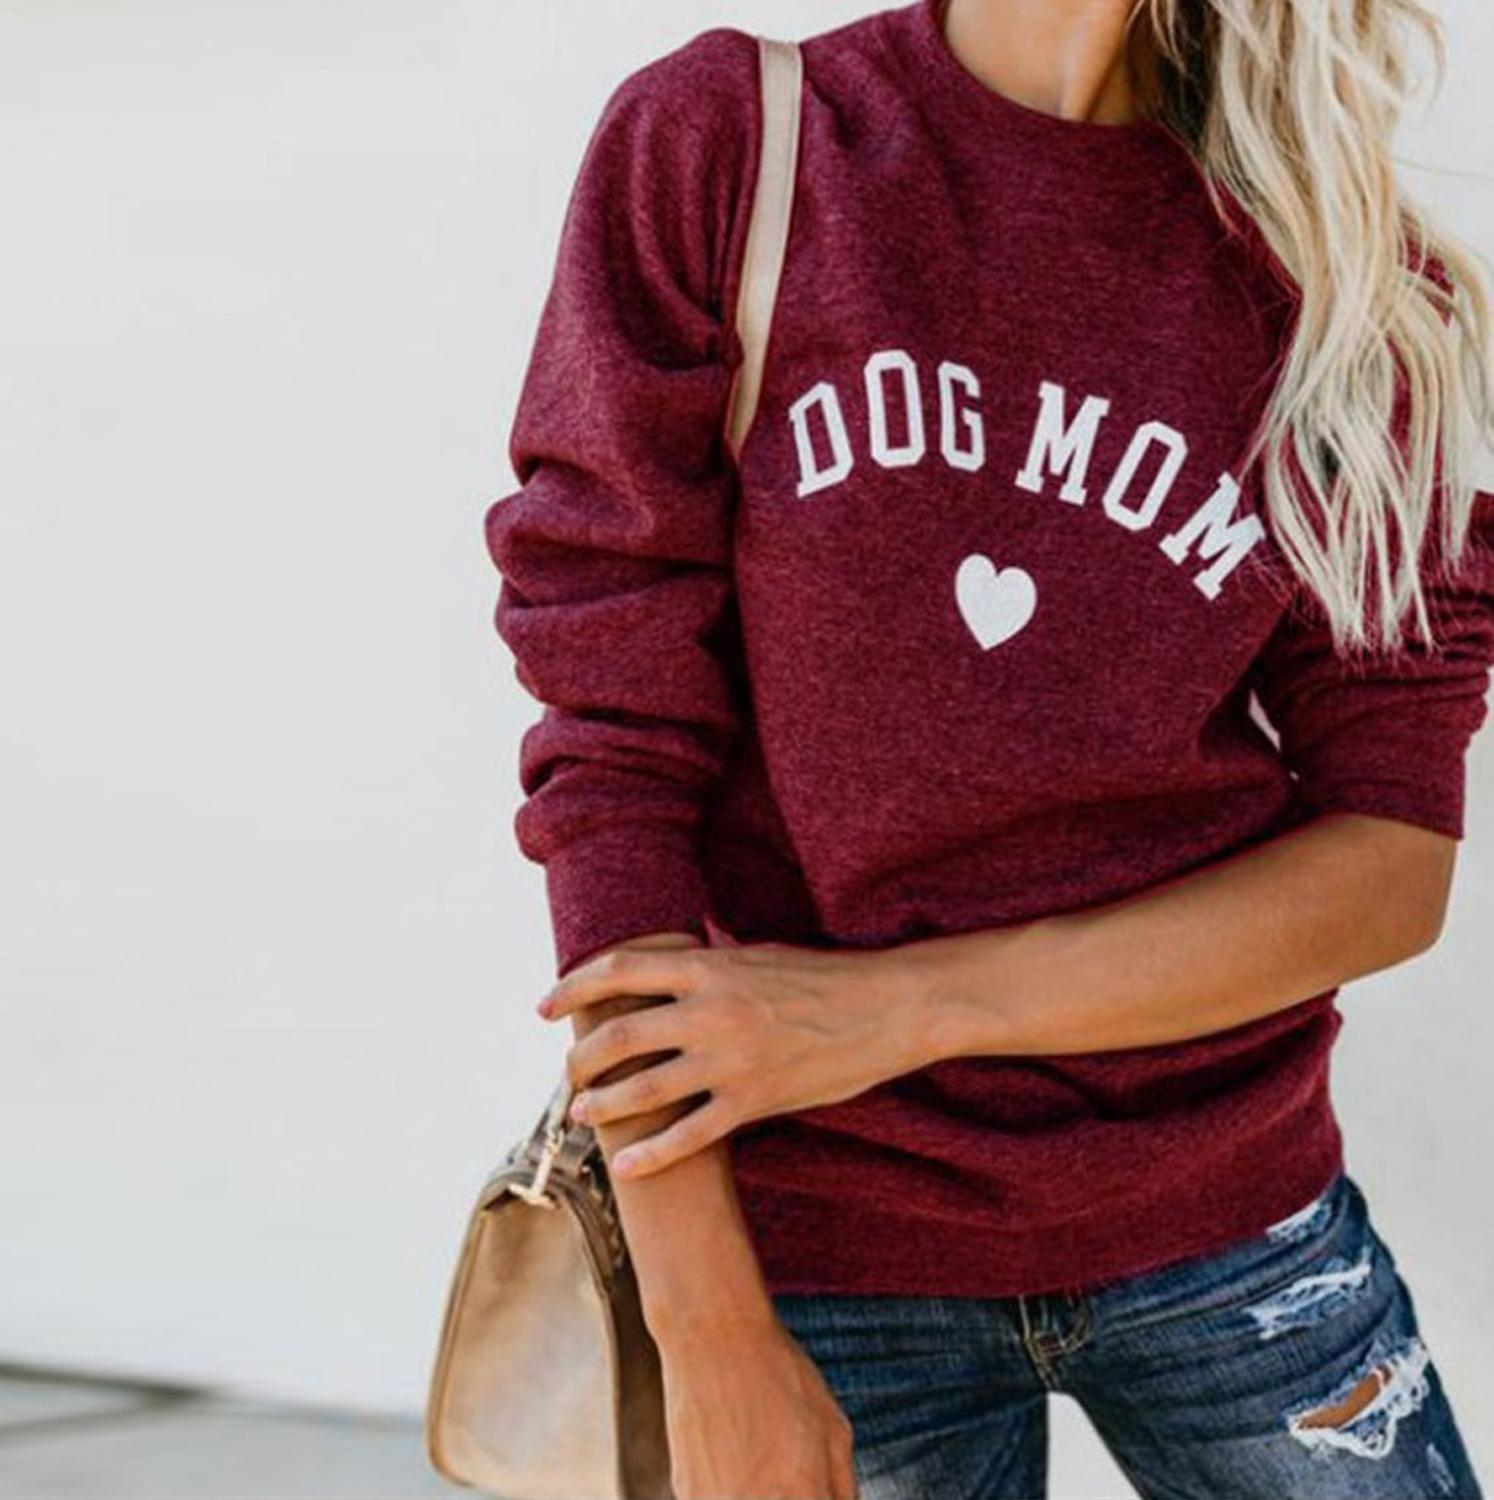 2019 Crew Neck Womens Tshirt Dog Mom And Cat Mom Kawaii Letter Prints Long Sleeve Women Tshirt Tops Fashion Pullover Outfits